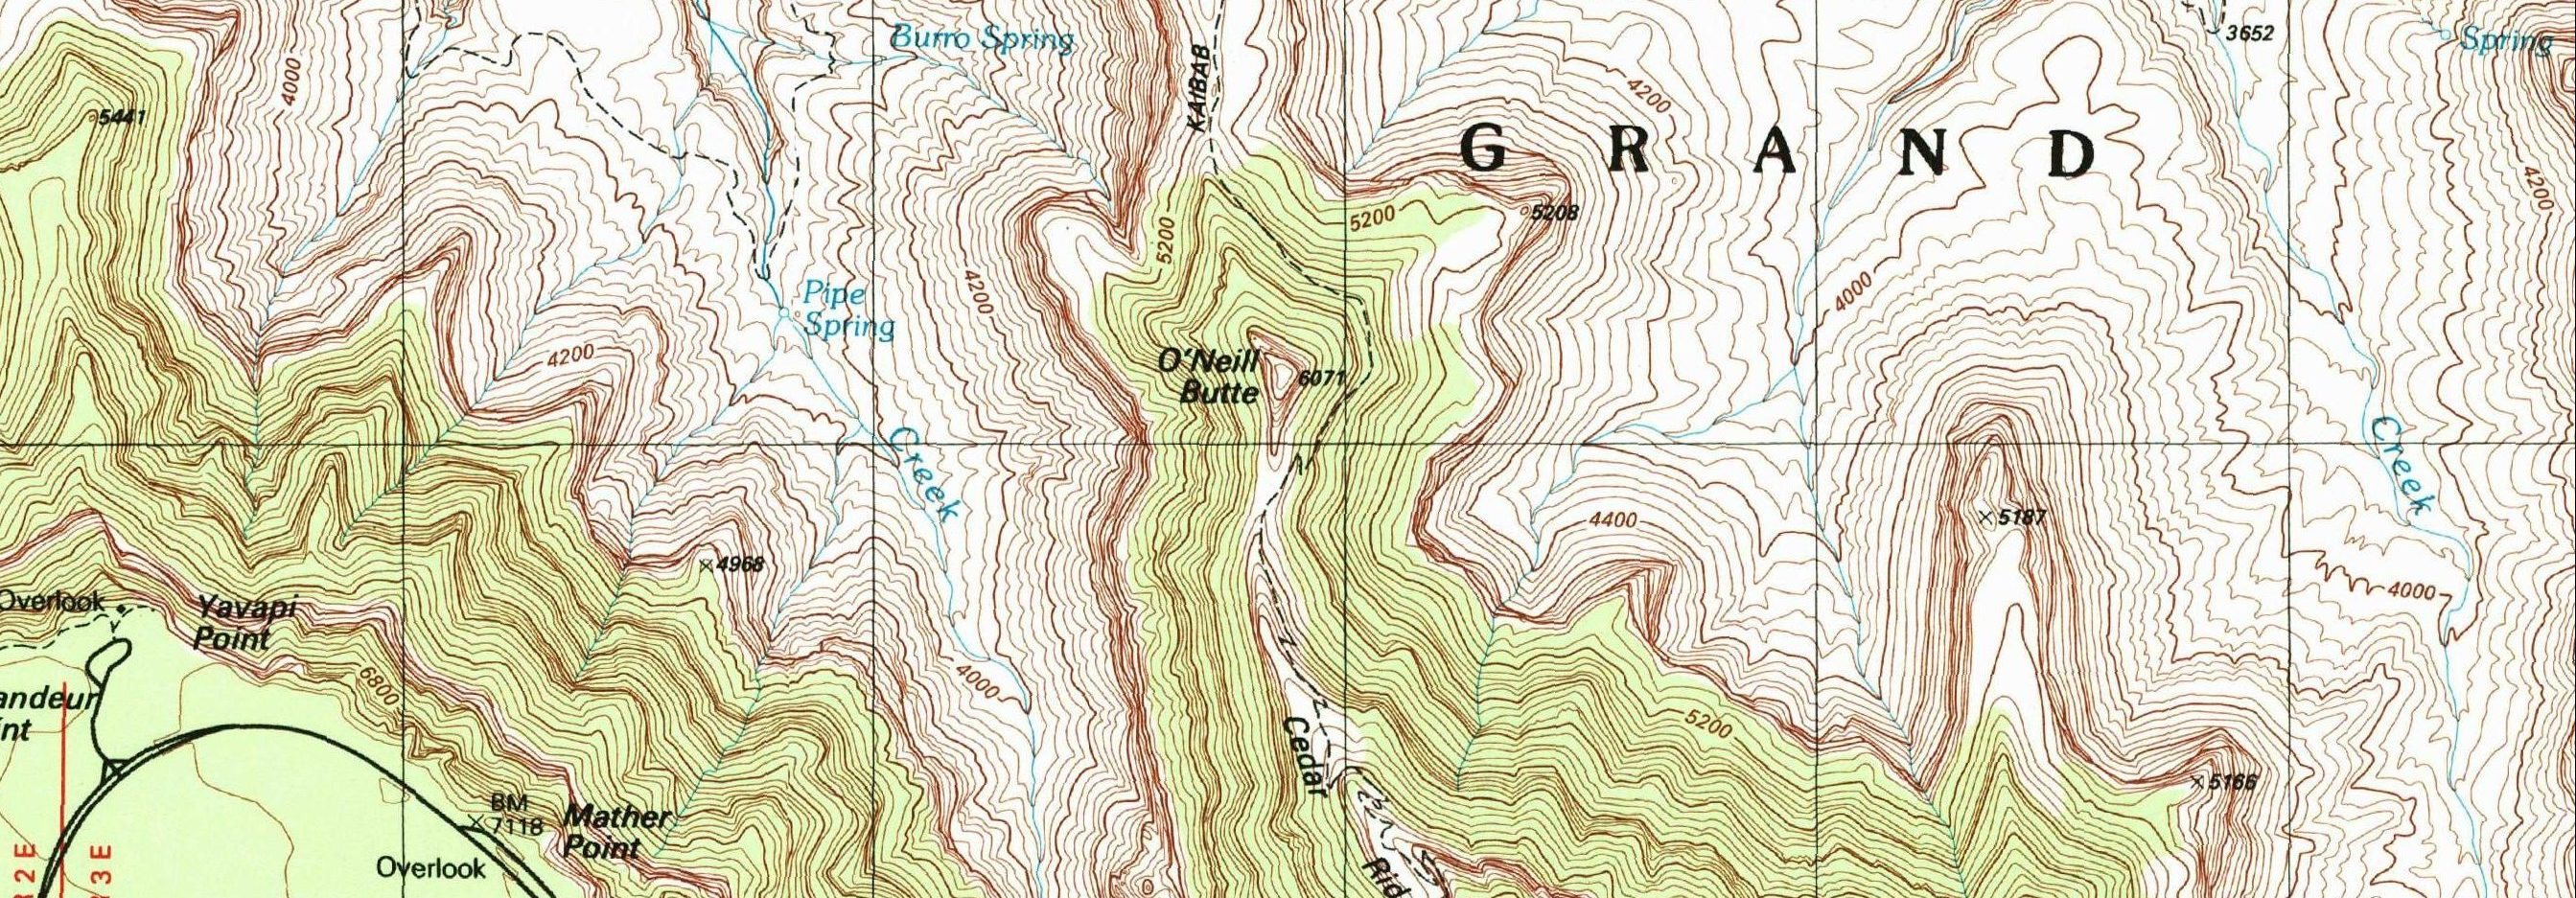 A section of a USGS topographic quadrangle map from the Grand Canyon